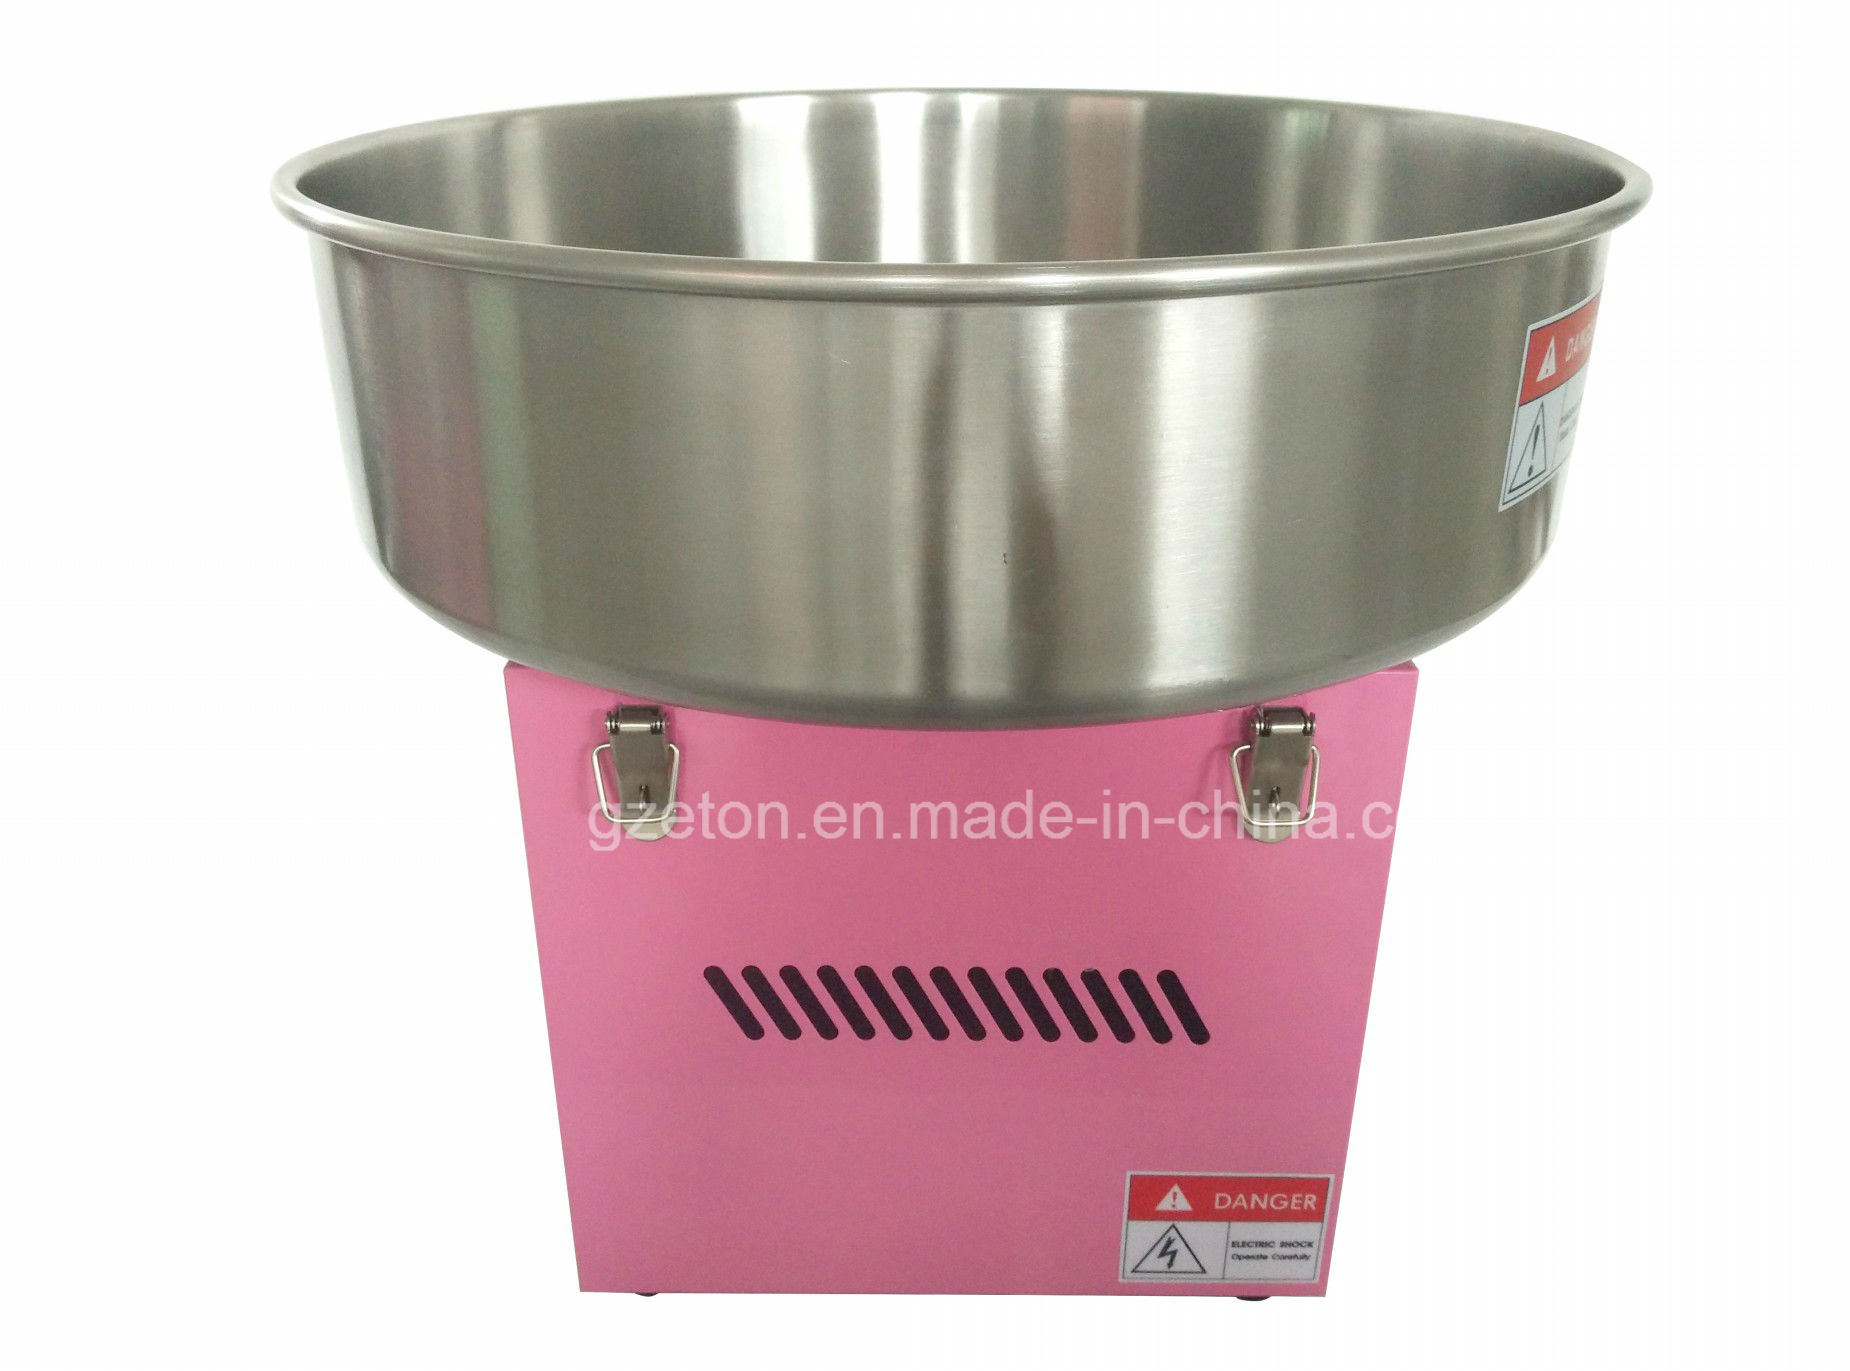 CE Approved Electric Candy Floss Machine (ET-MF01(520))